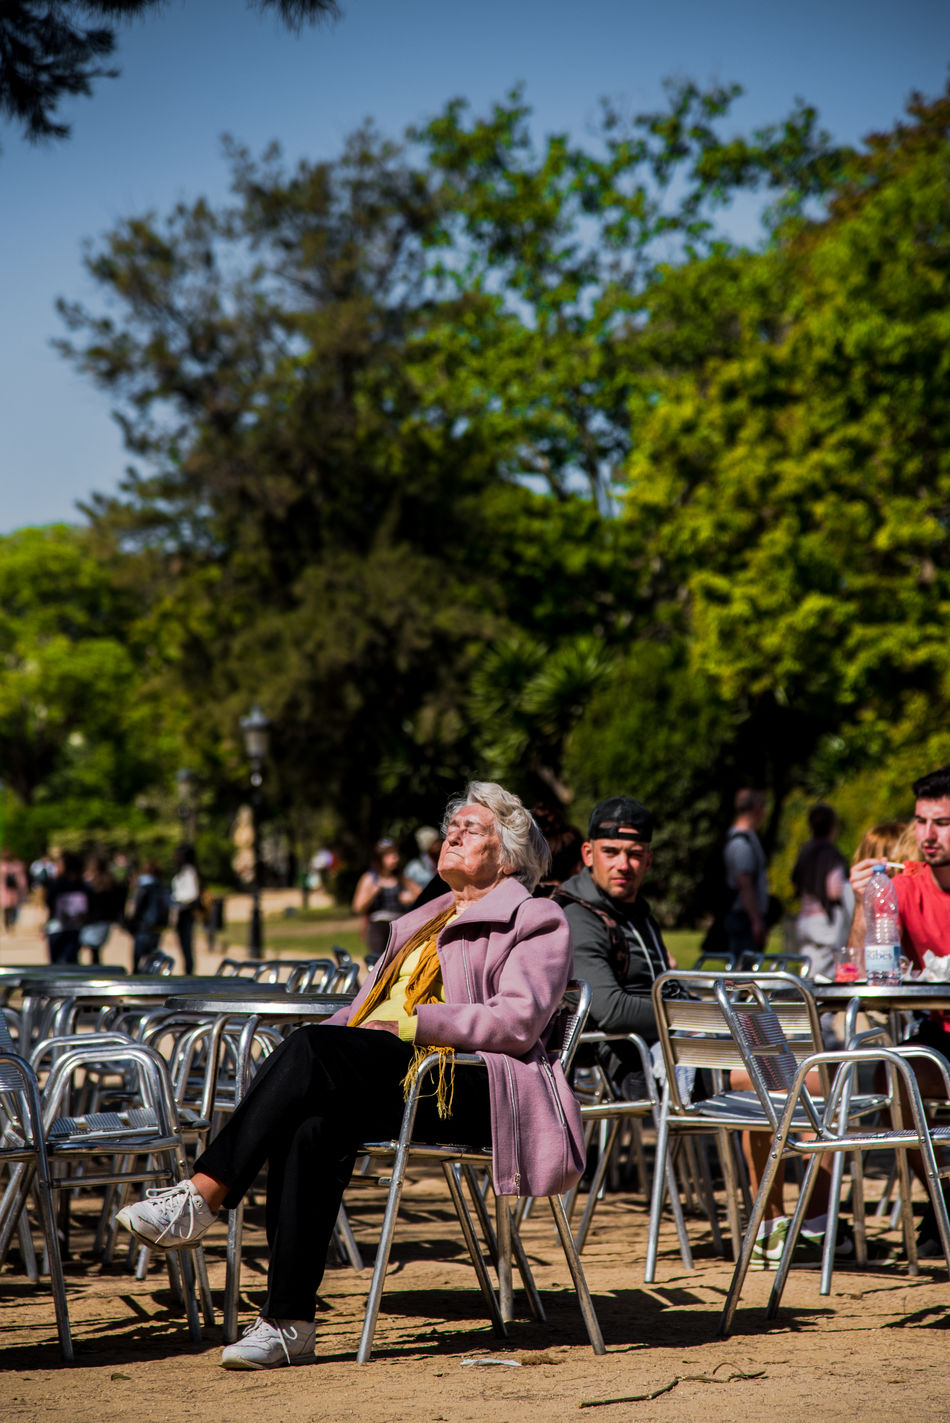 Chair City City Life Day Enjoying Life Focus On Foreground Leisure Activity Lifestyles Men Outdoors Park People Portrait Real People Senior Adult Senior Women Sitting Sky Spring Springtime Sun Sunbathing Sunlight Sunny Table